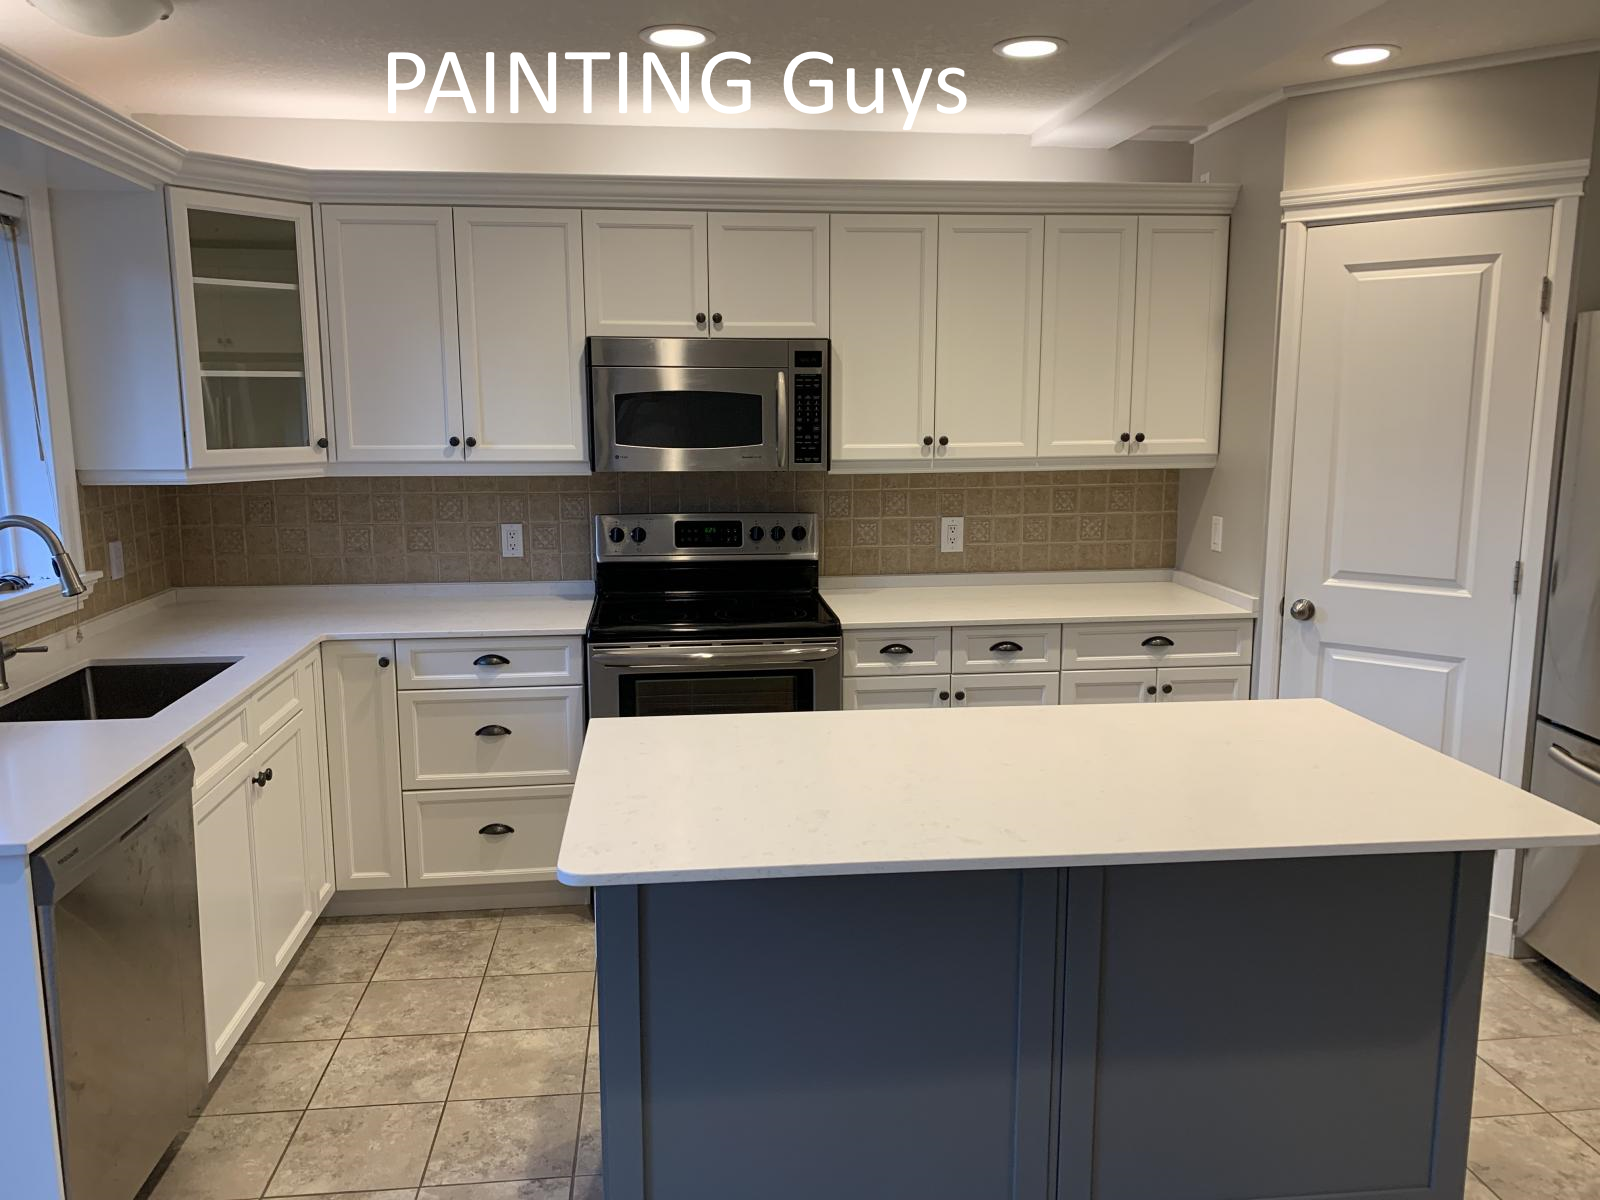 Nanaimo kitchen cabinet painting - PAINTING Guys